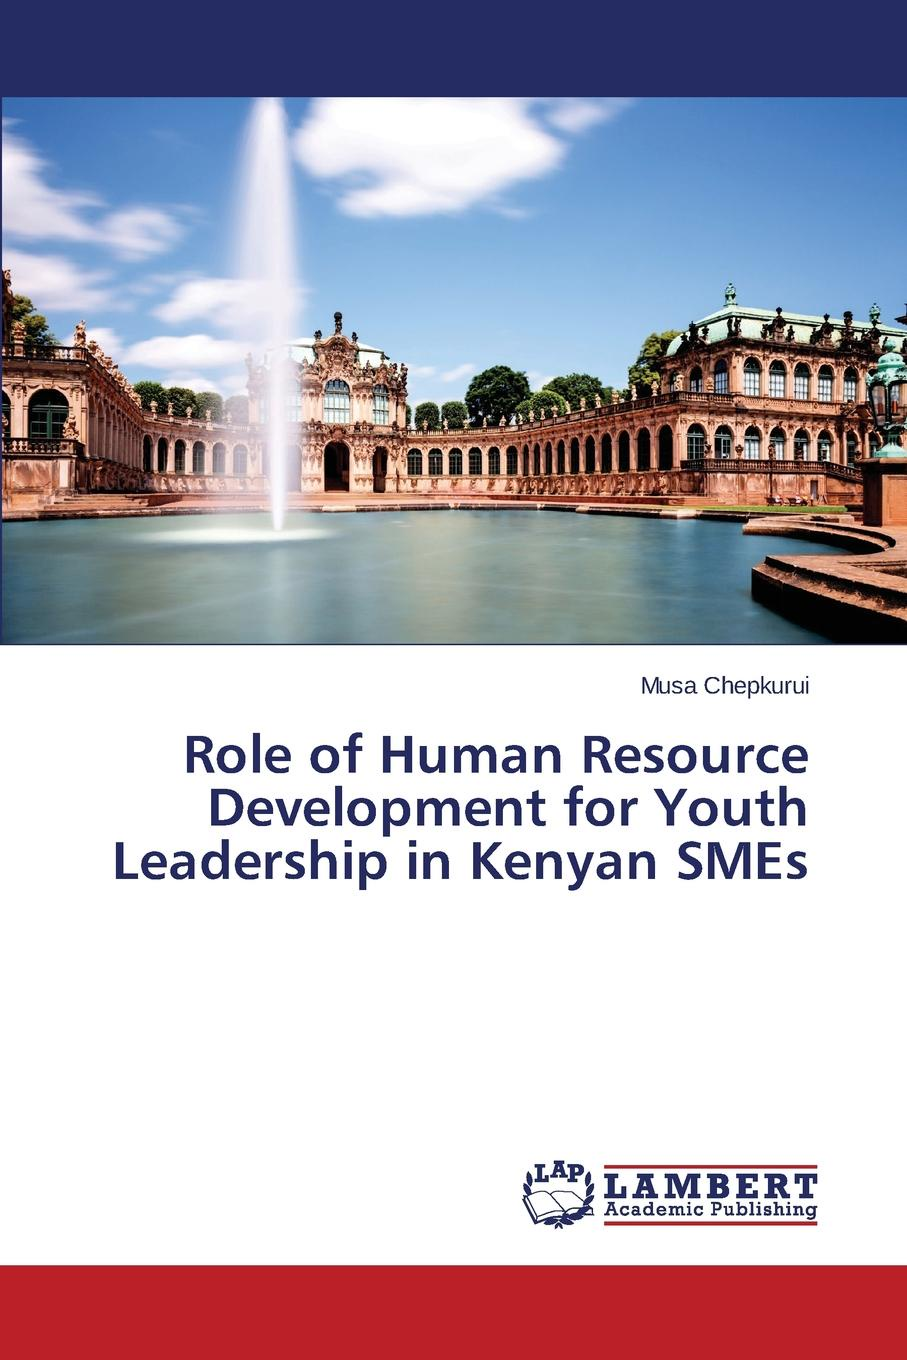 Chepkurui Musa Role of Human Resource Development for Youth Leadership in Kenyan SMEs david sykes leadership a formula for success